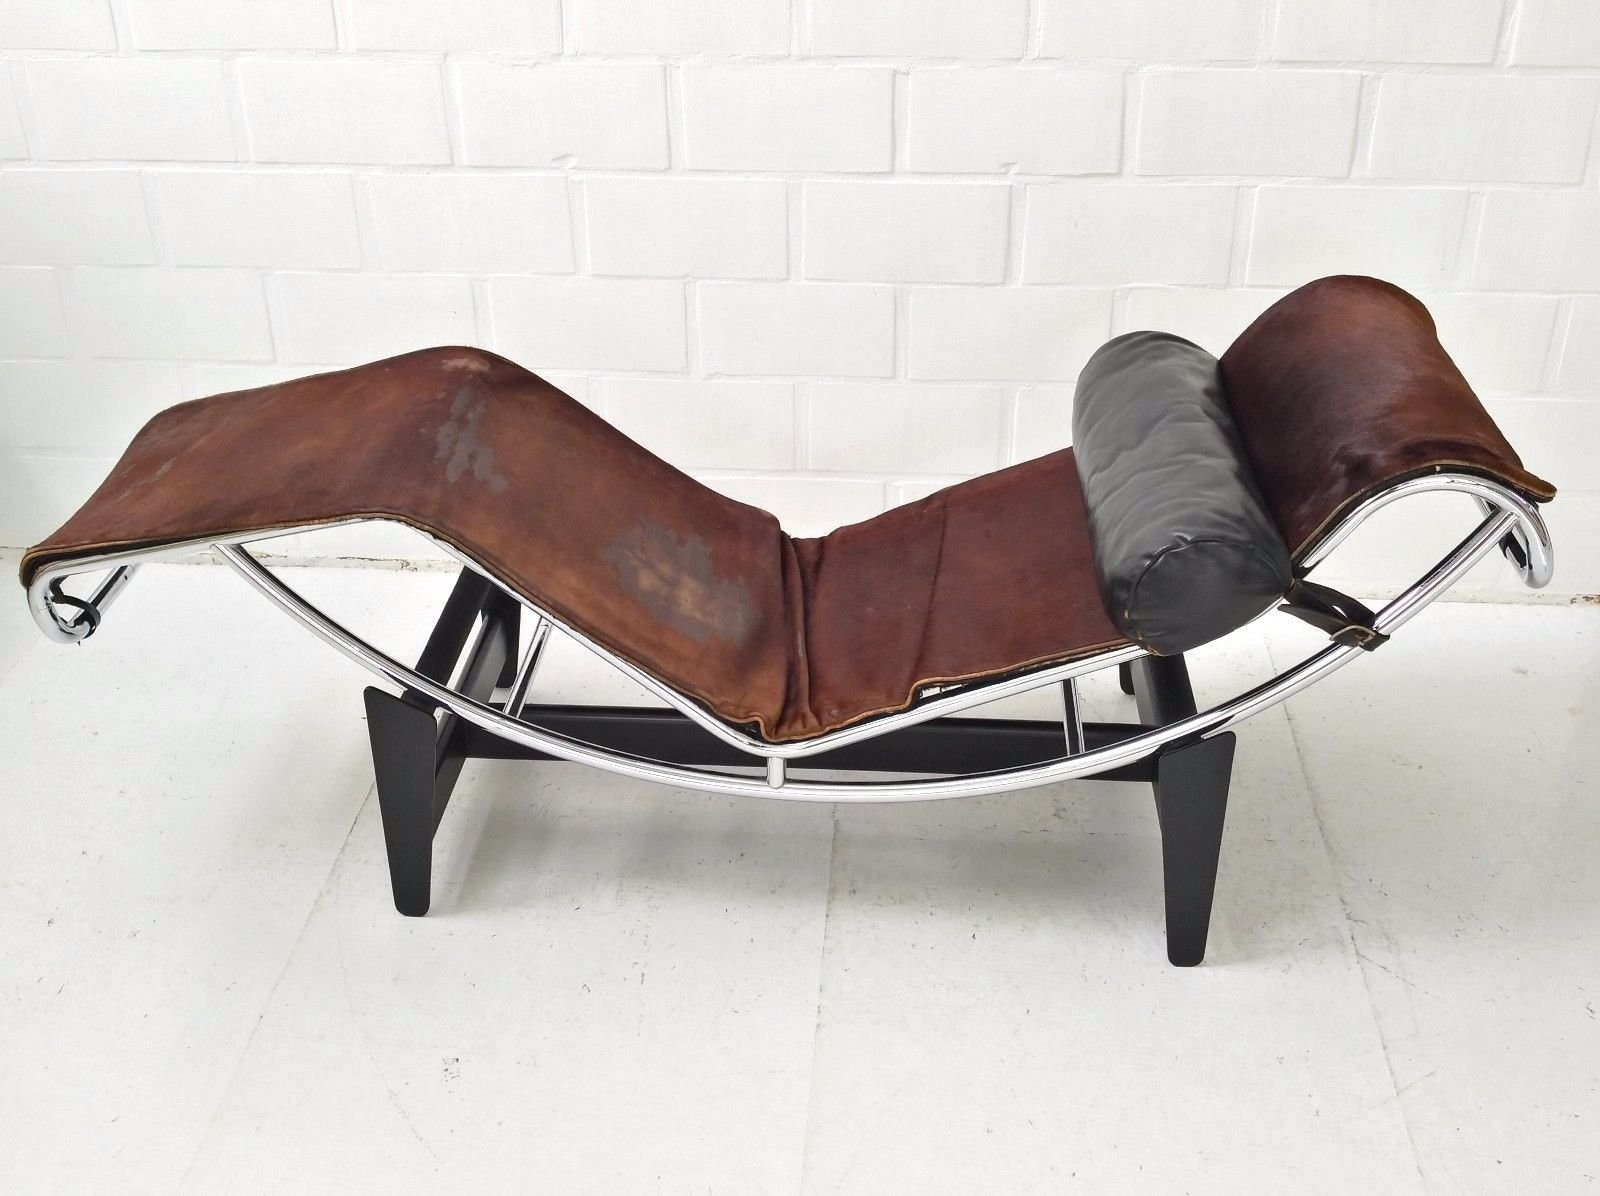 Lc4 chaise longue by le corbusier charlotte perriand for Chaise for sale